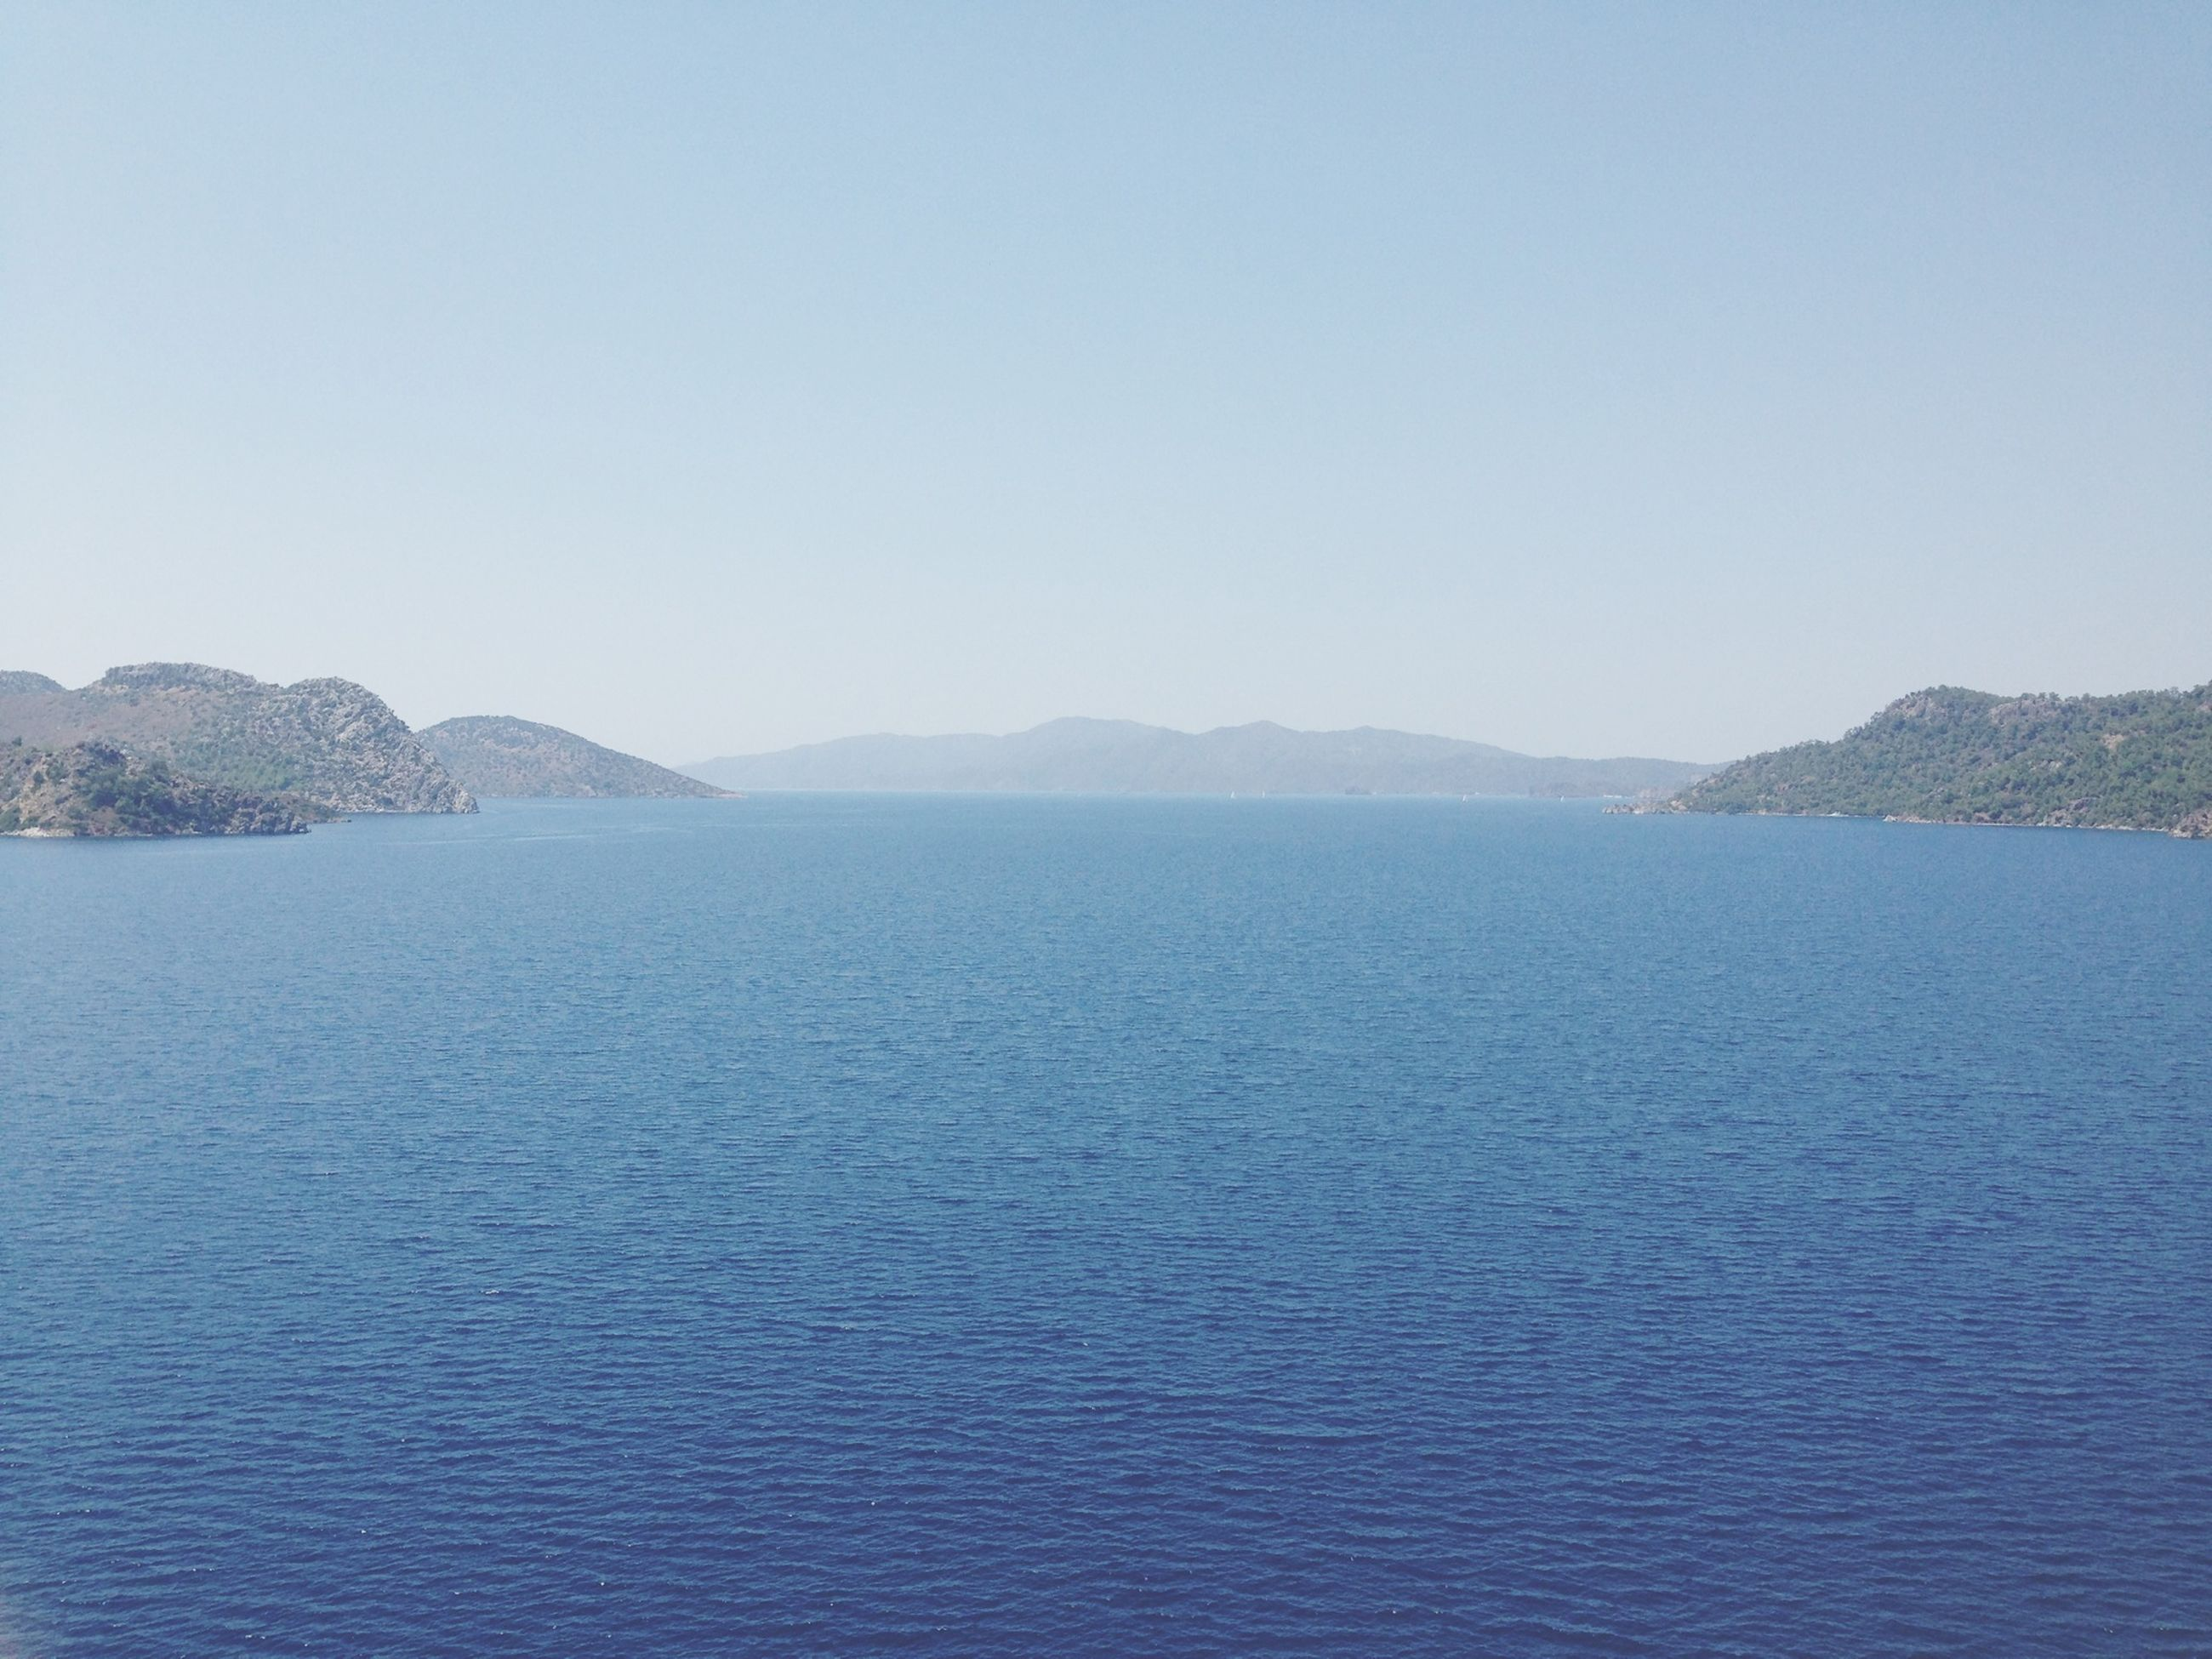 water, clear sky, tranquil scene, copy space, scenics, tranquility, sea, beauty in nature, mountain, waterfront, nature, blue, idyllic, rippled, mountain range, outdoors, day, no people, remote, non-urban scene